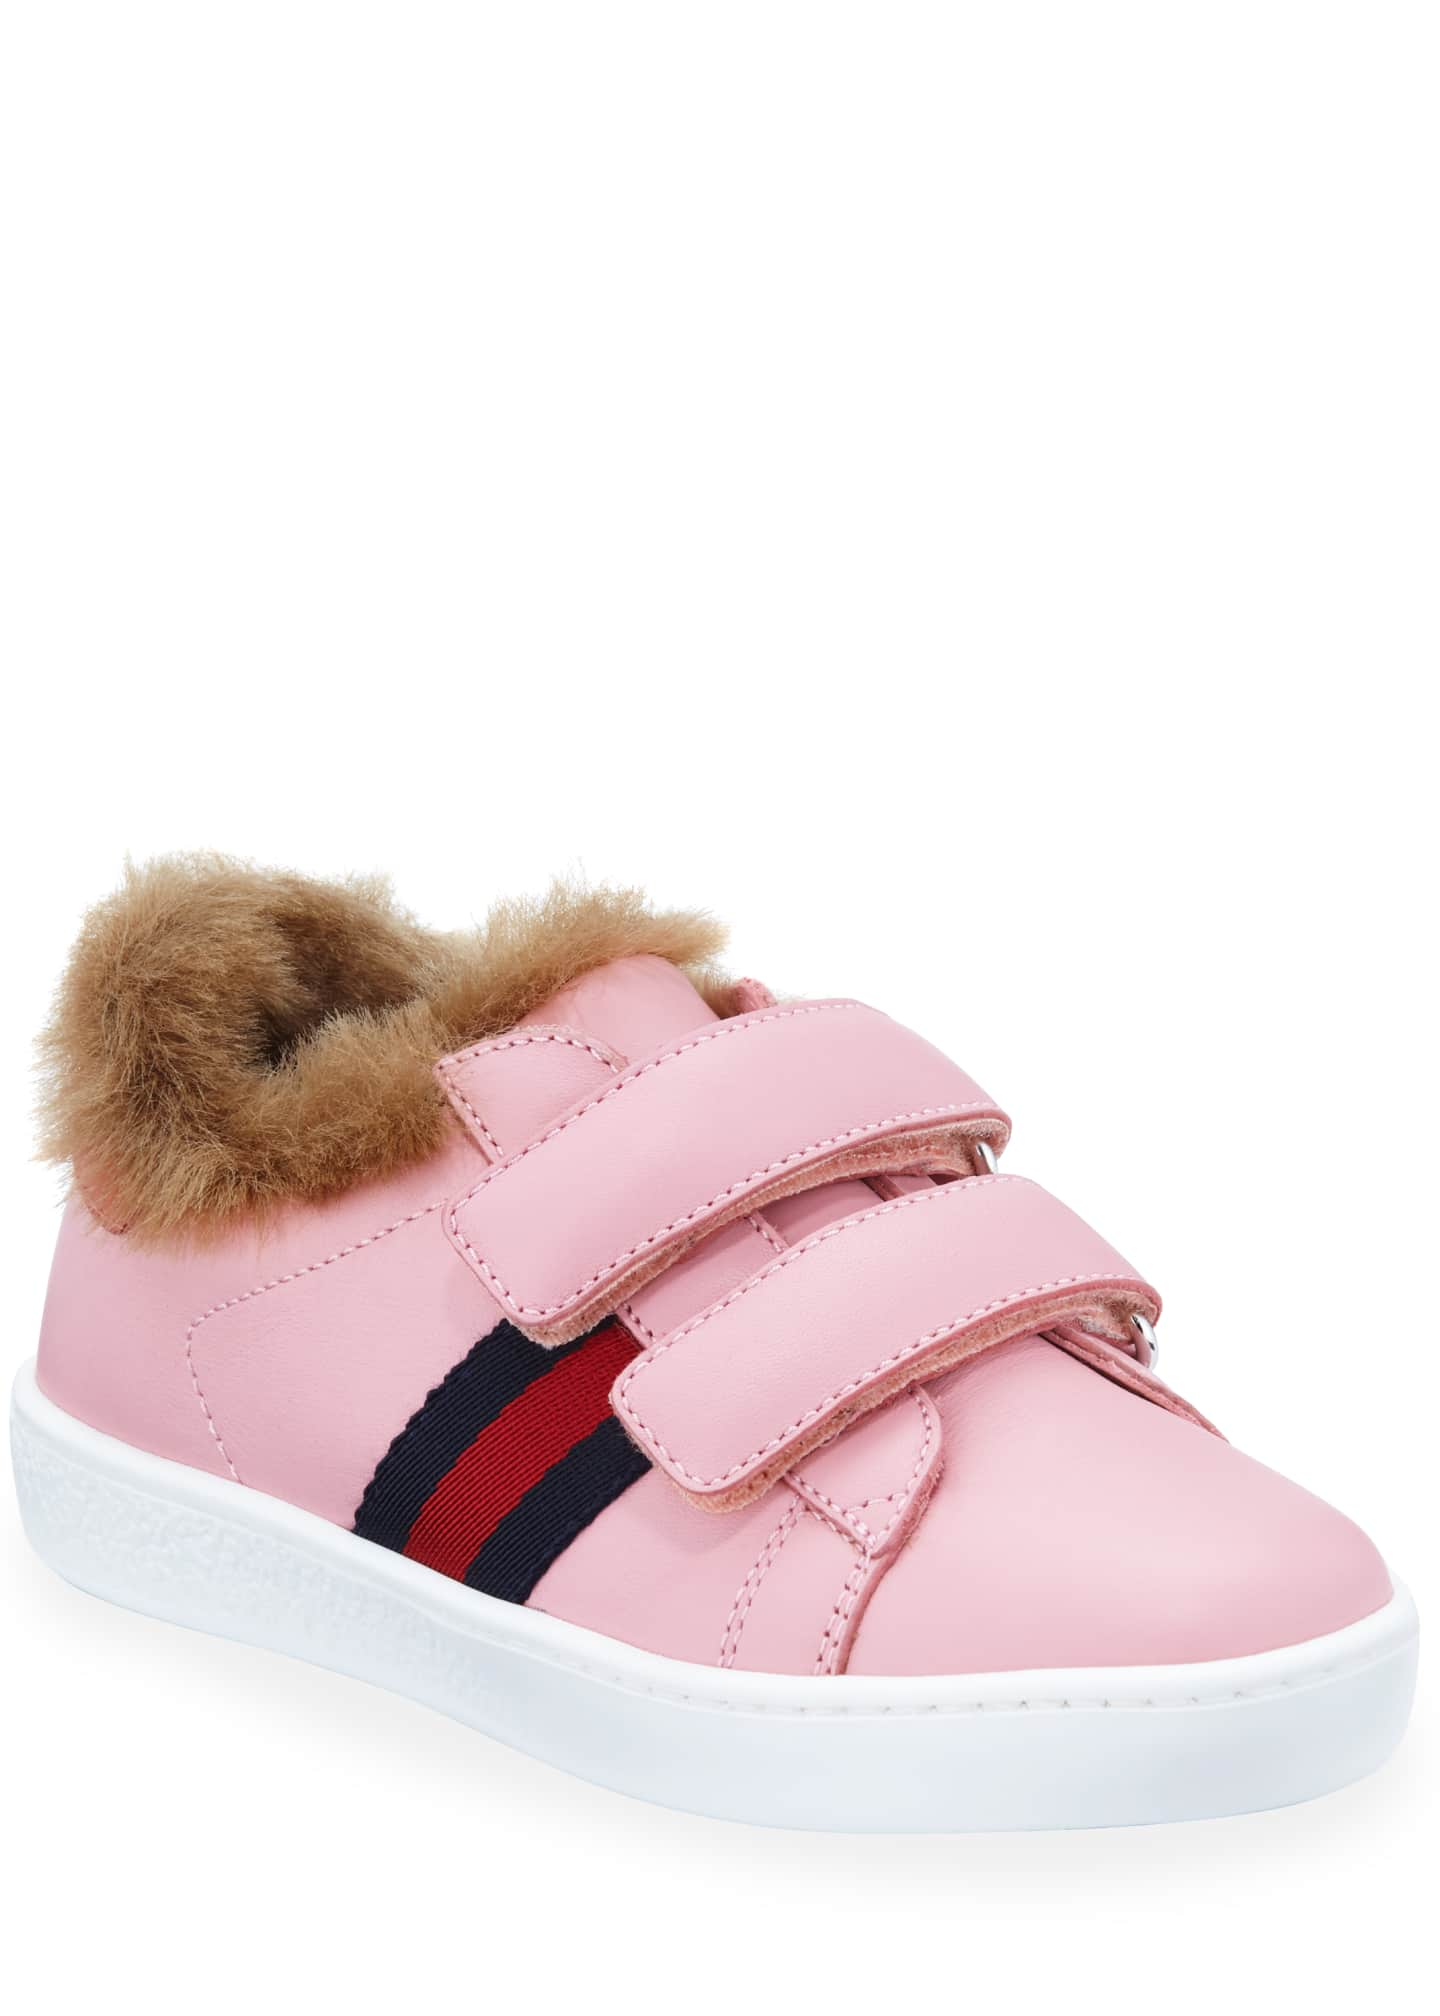 Aceweb new ace web-trim leather sneakers w/ faux-fur lining, toddler